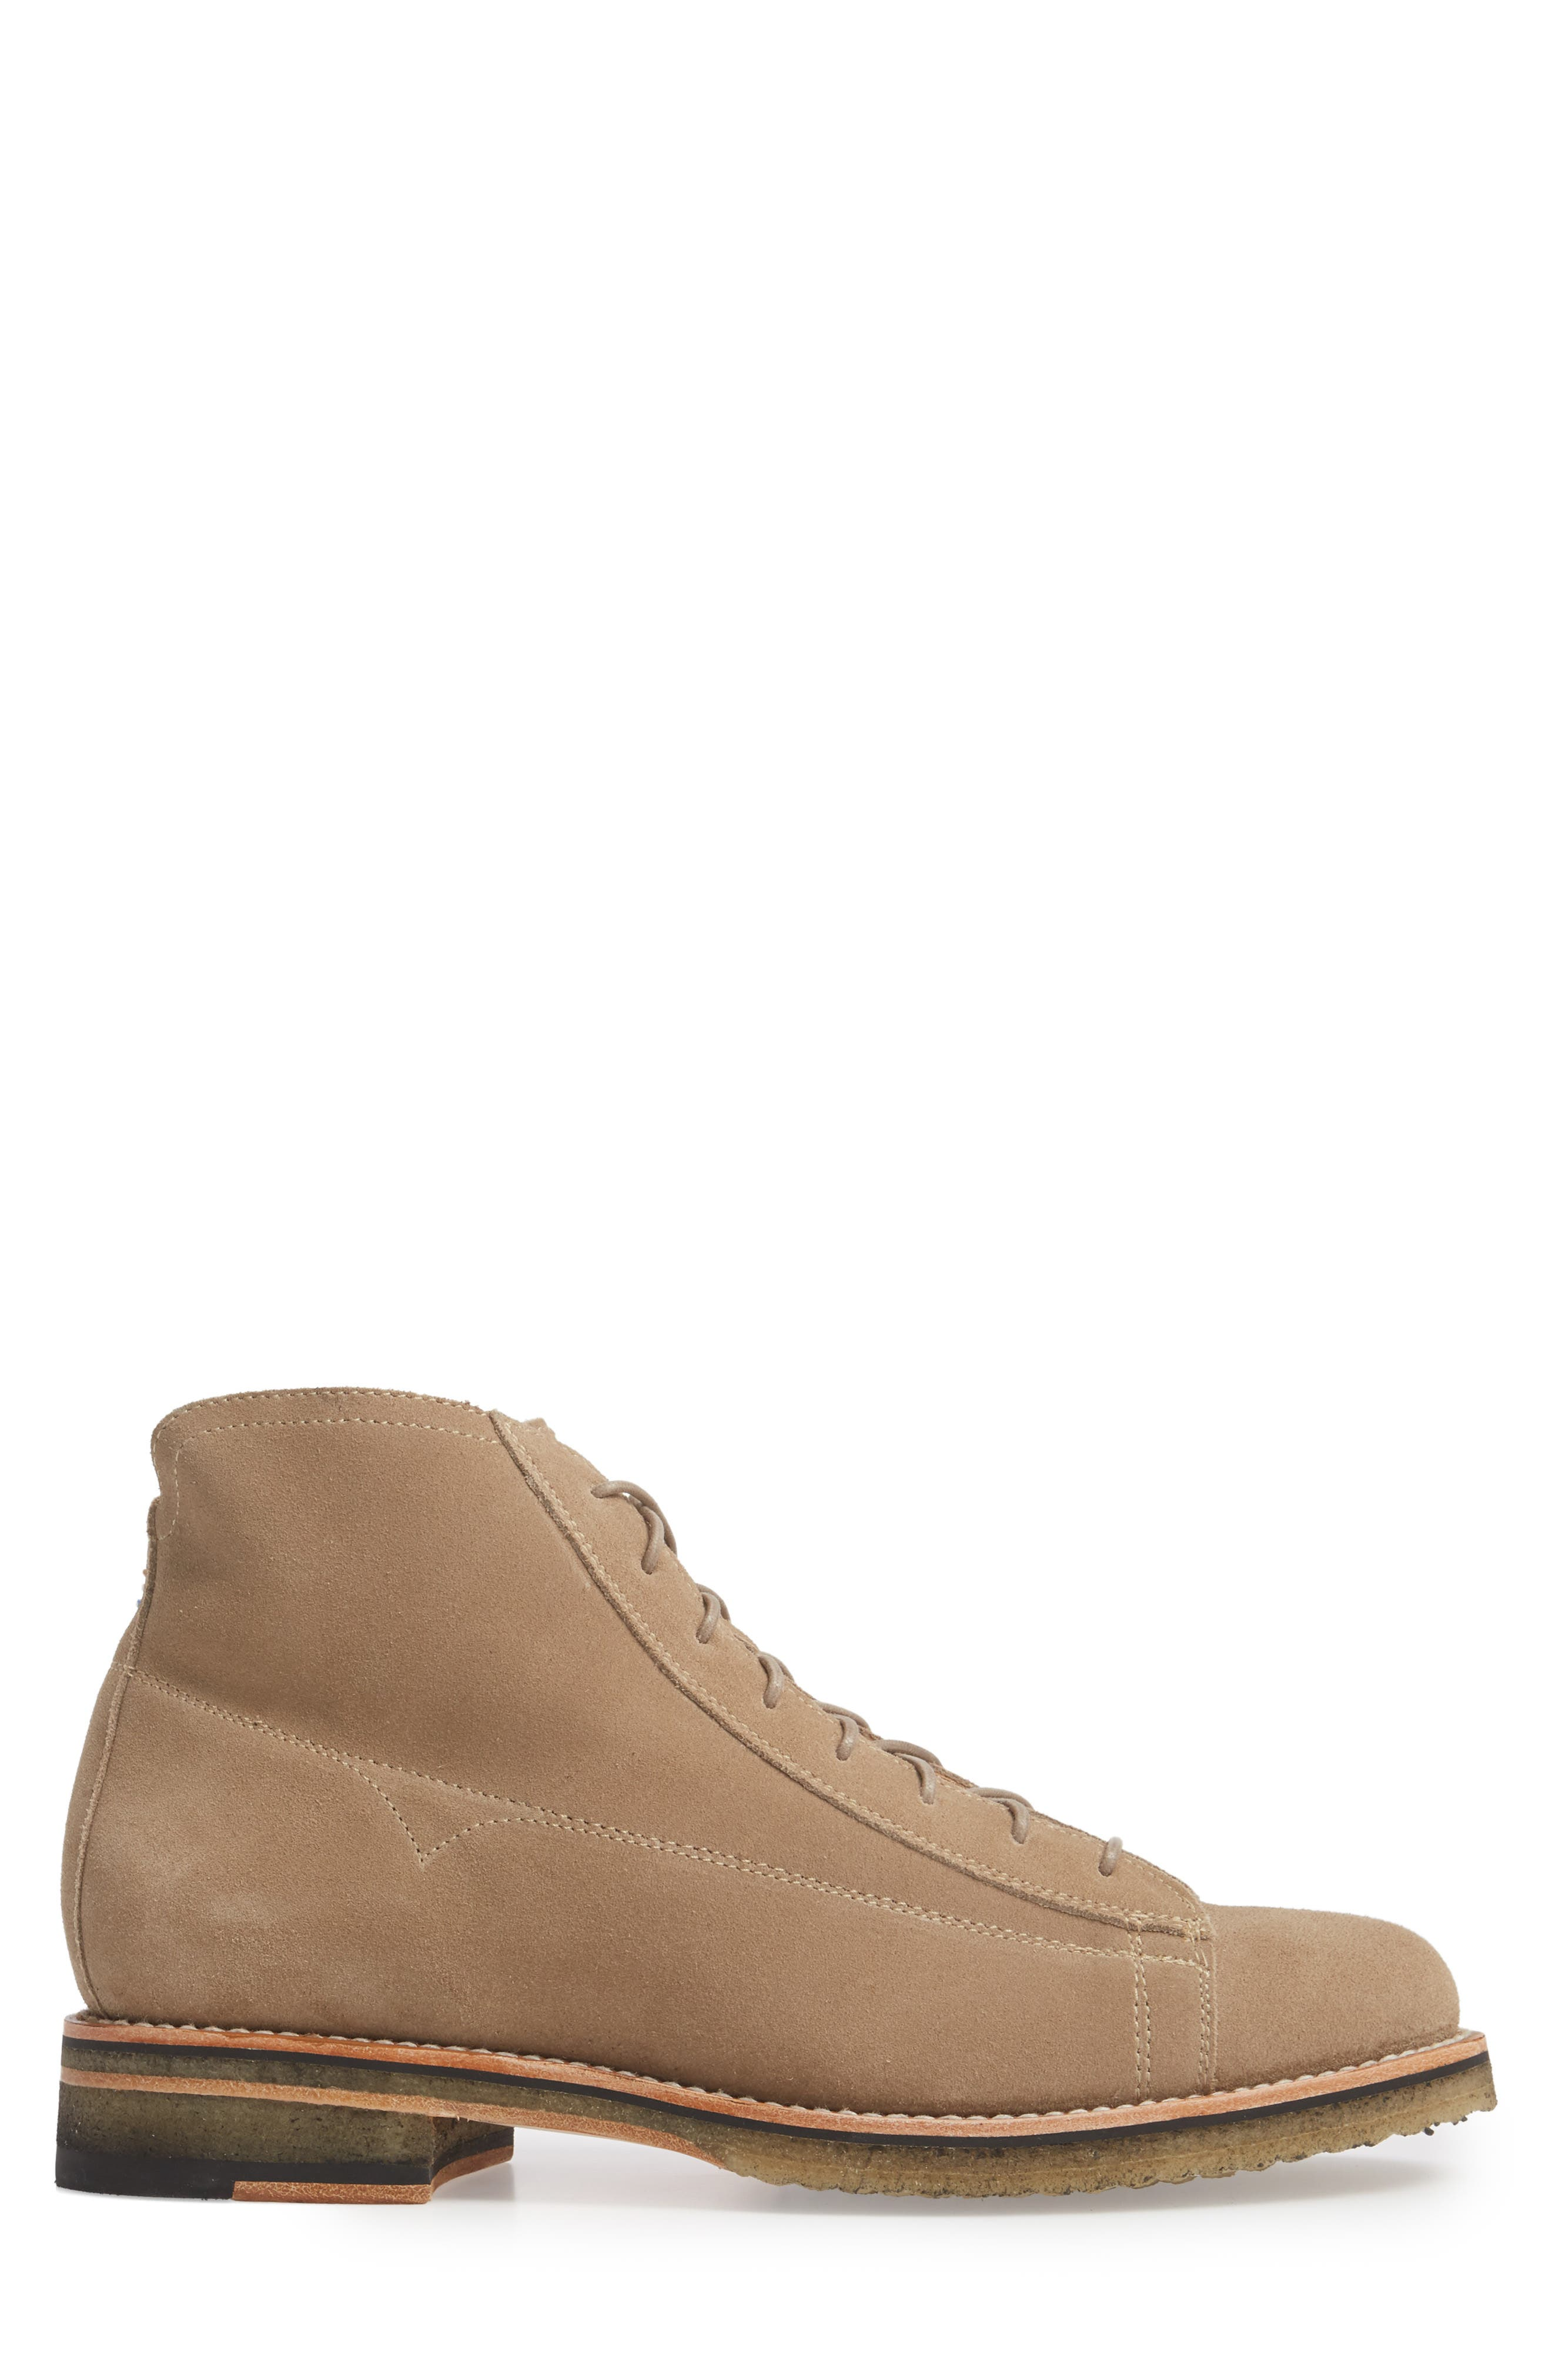 Two24 by Ariat Webster Boot,                             Alternate thumbnail 3, color,                             Biscotti Suede